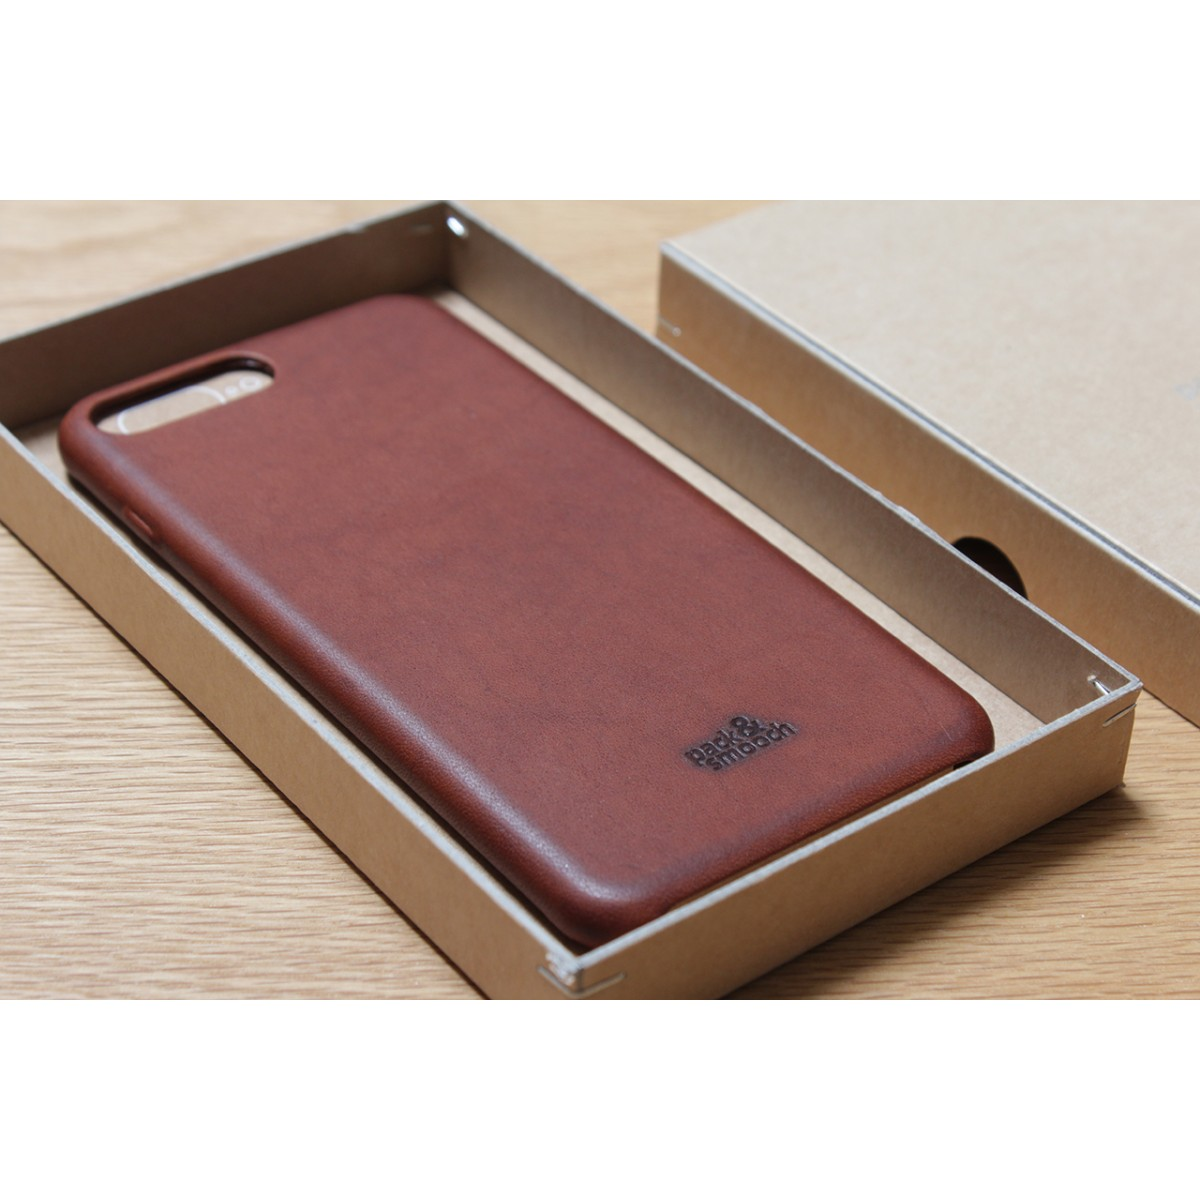 iPhone 8 / 7 PLUS Leder Hülle, Back Cover (Vegetable tanned leather)